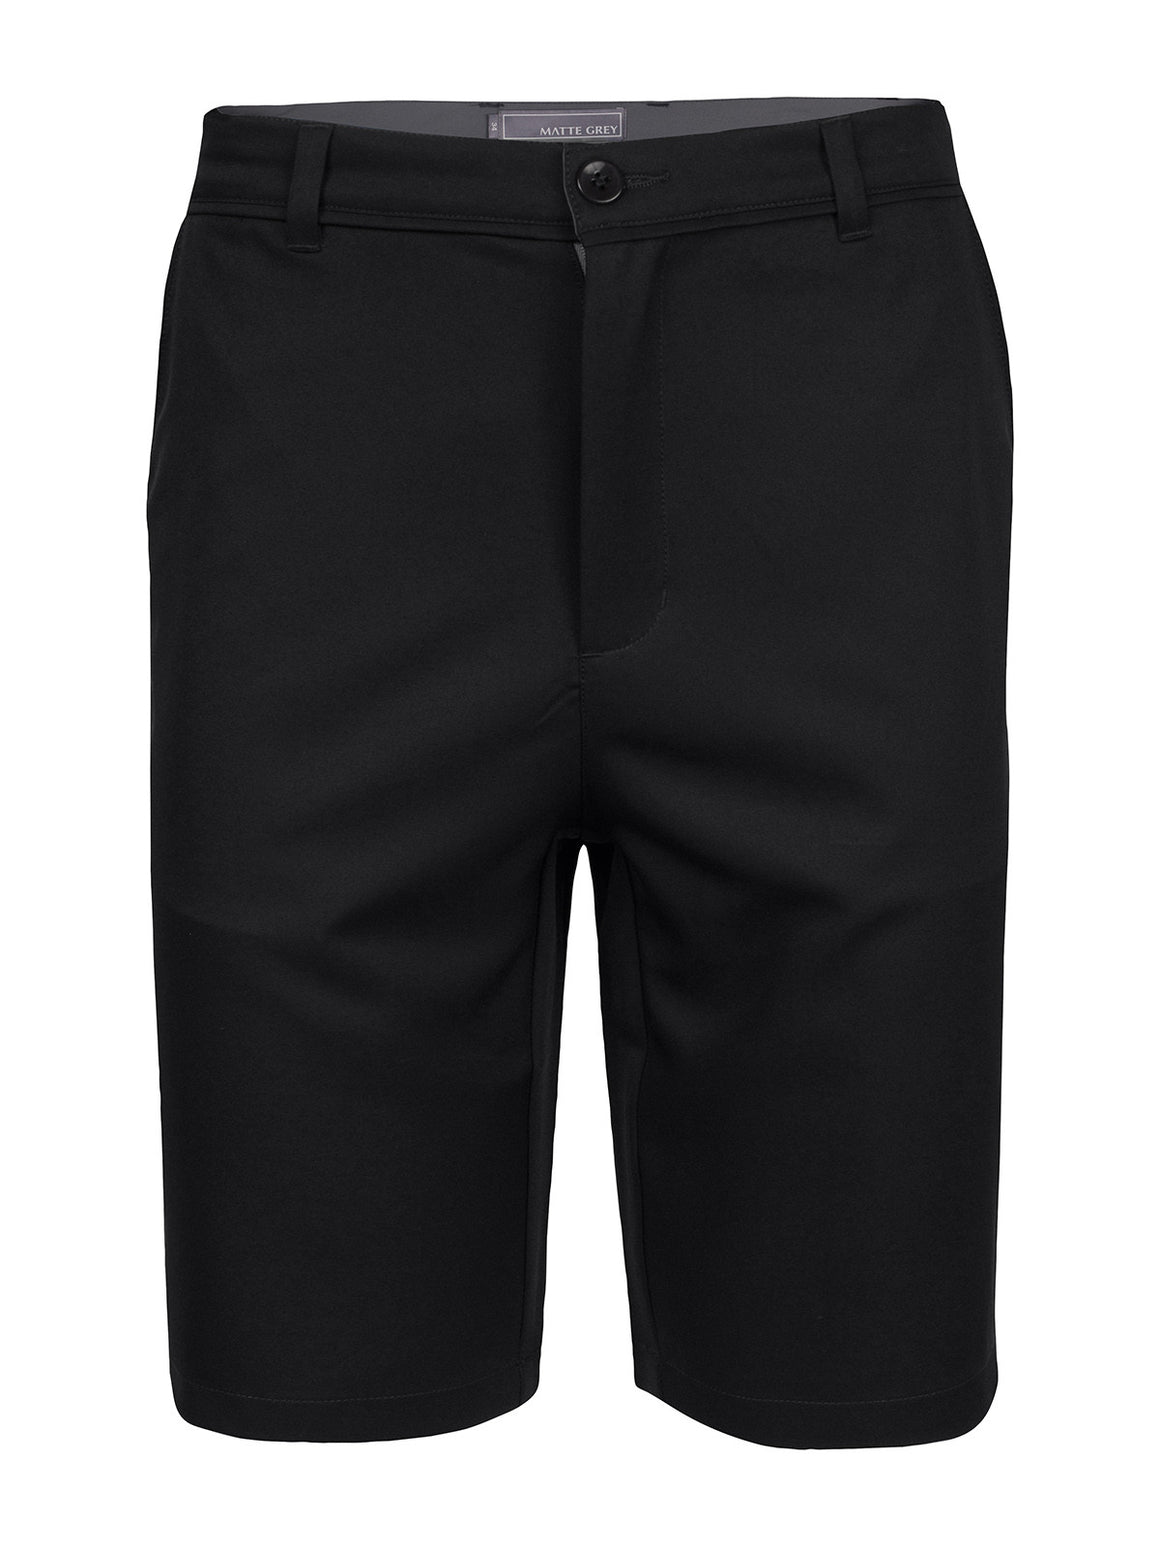 Wayfarer FIT101 Short - Black